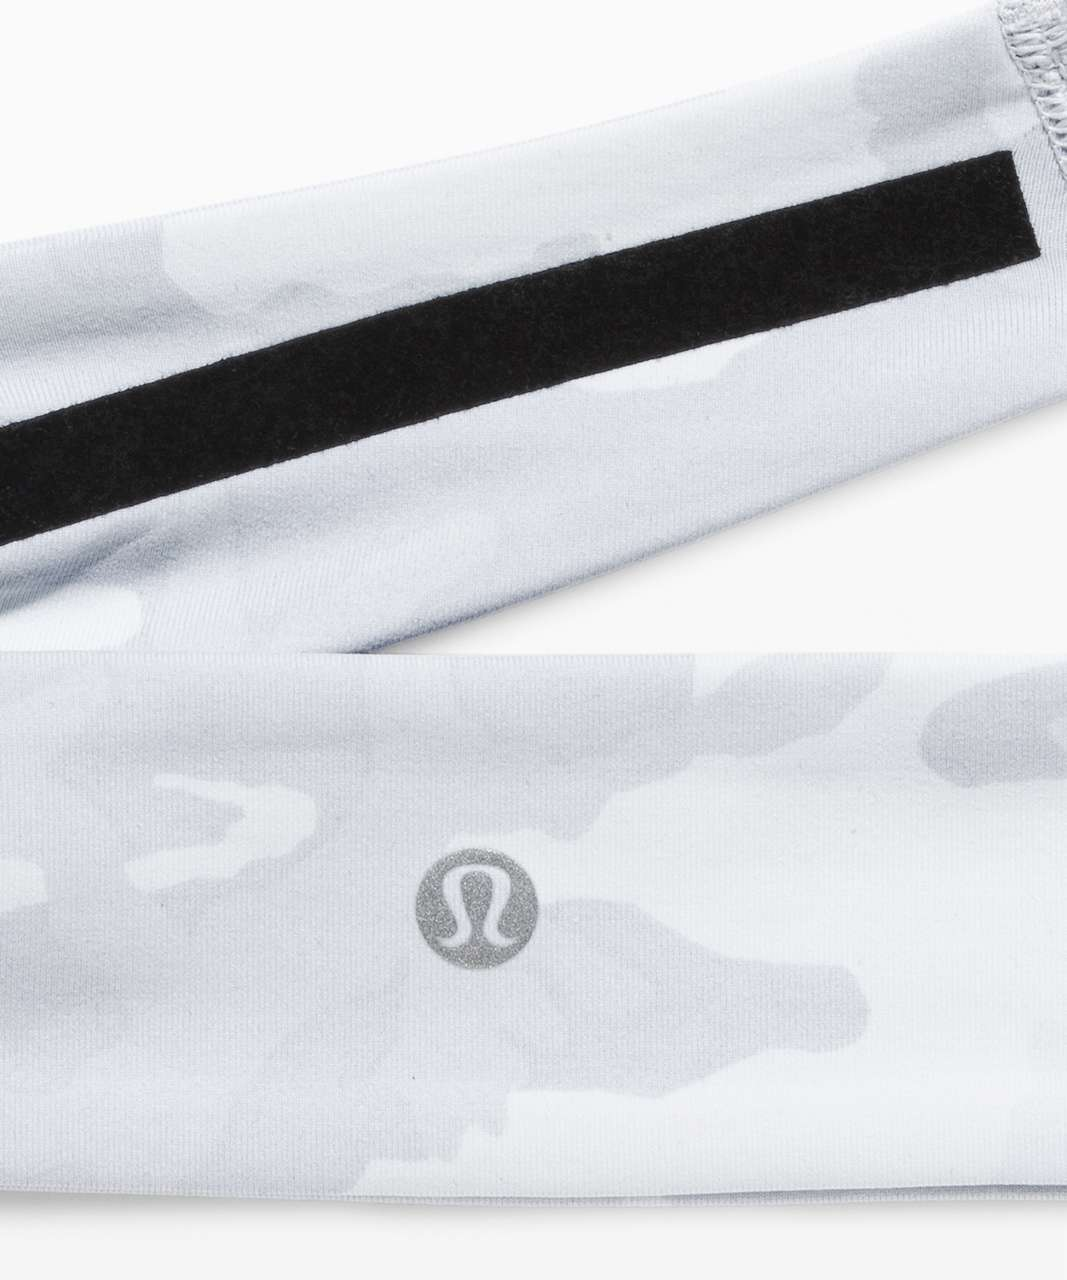 Lululemon Fly Away Tamer Headband - Incognito Camo Alpine White Multi